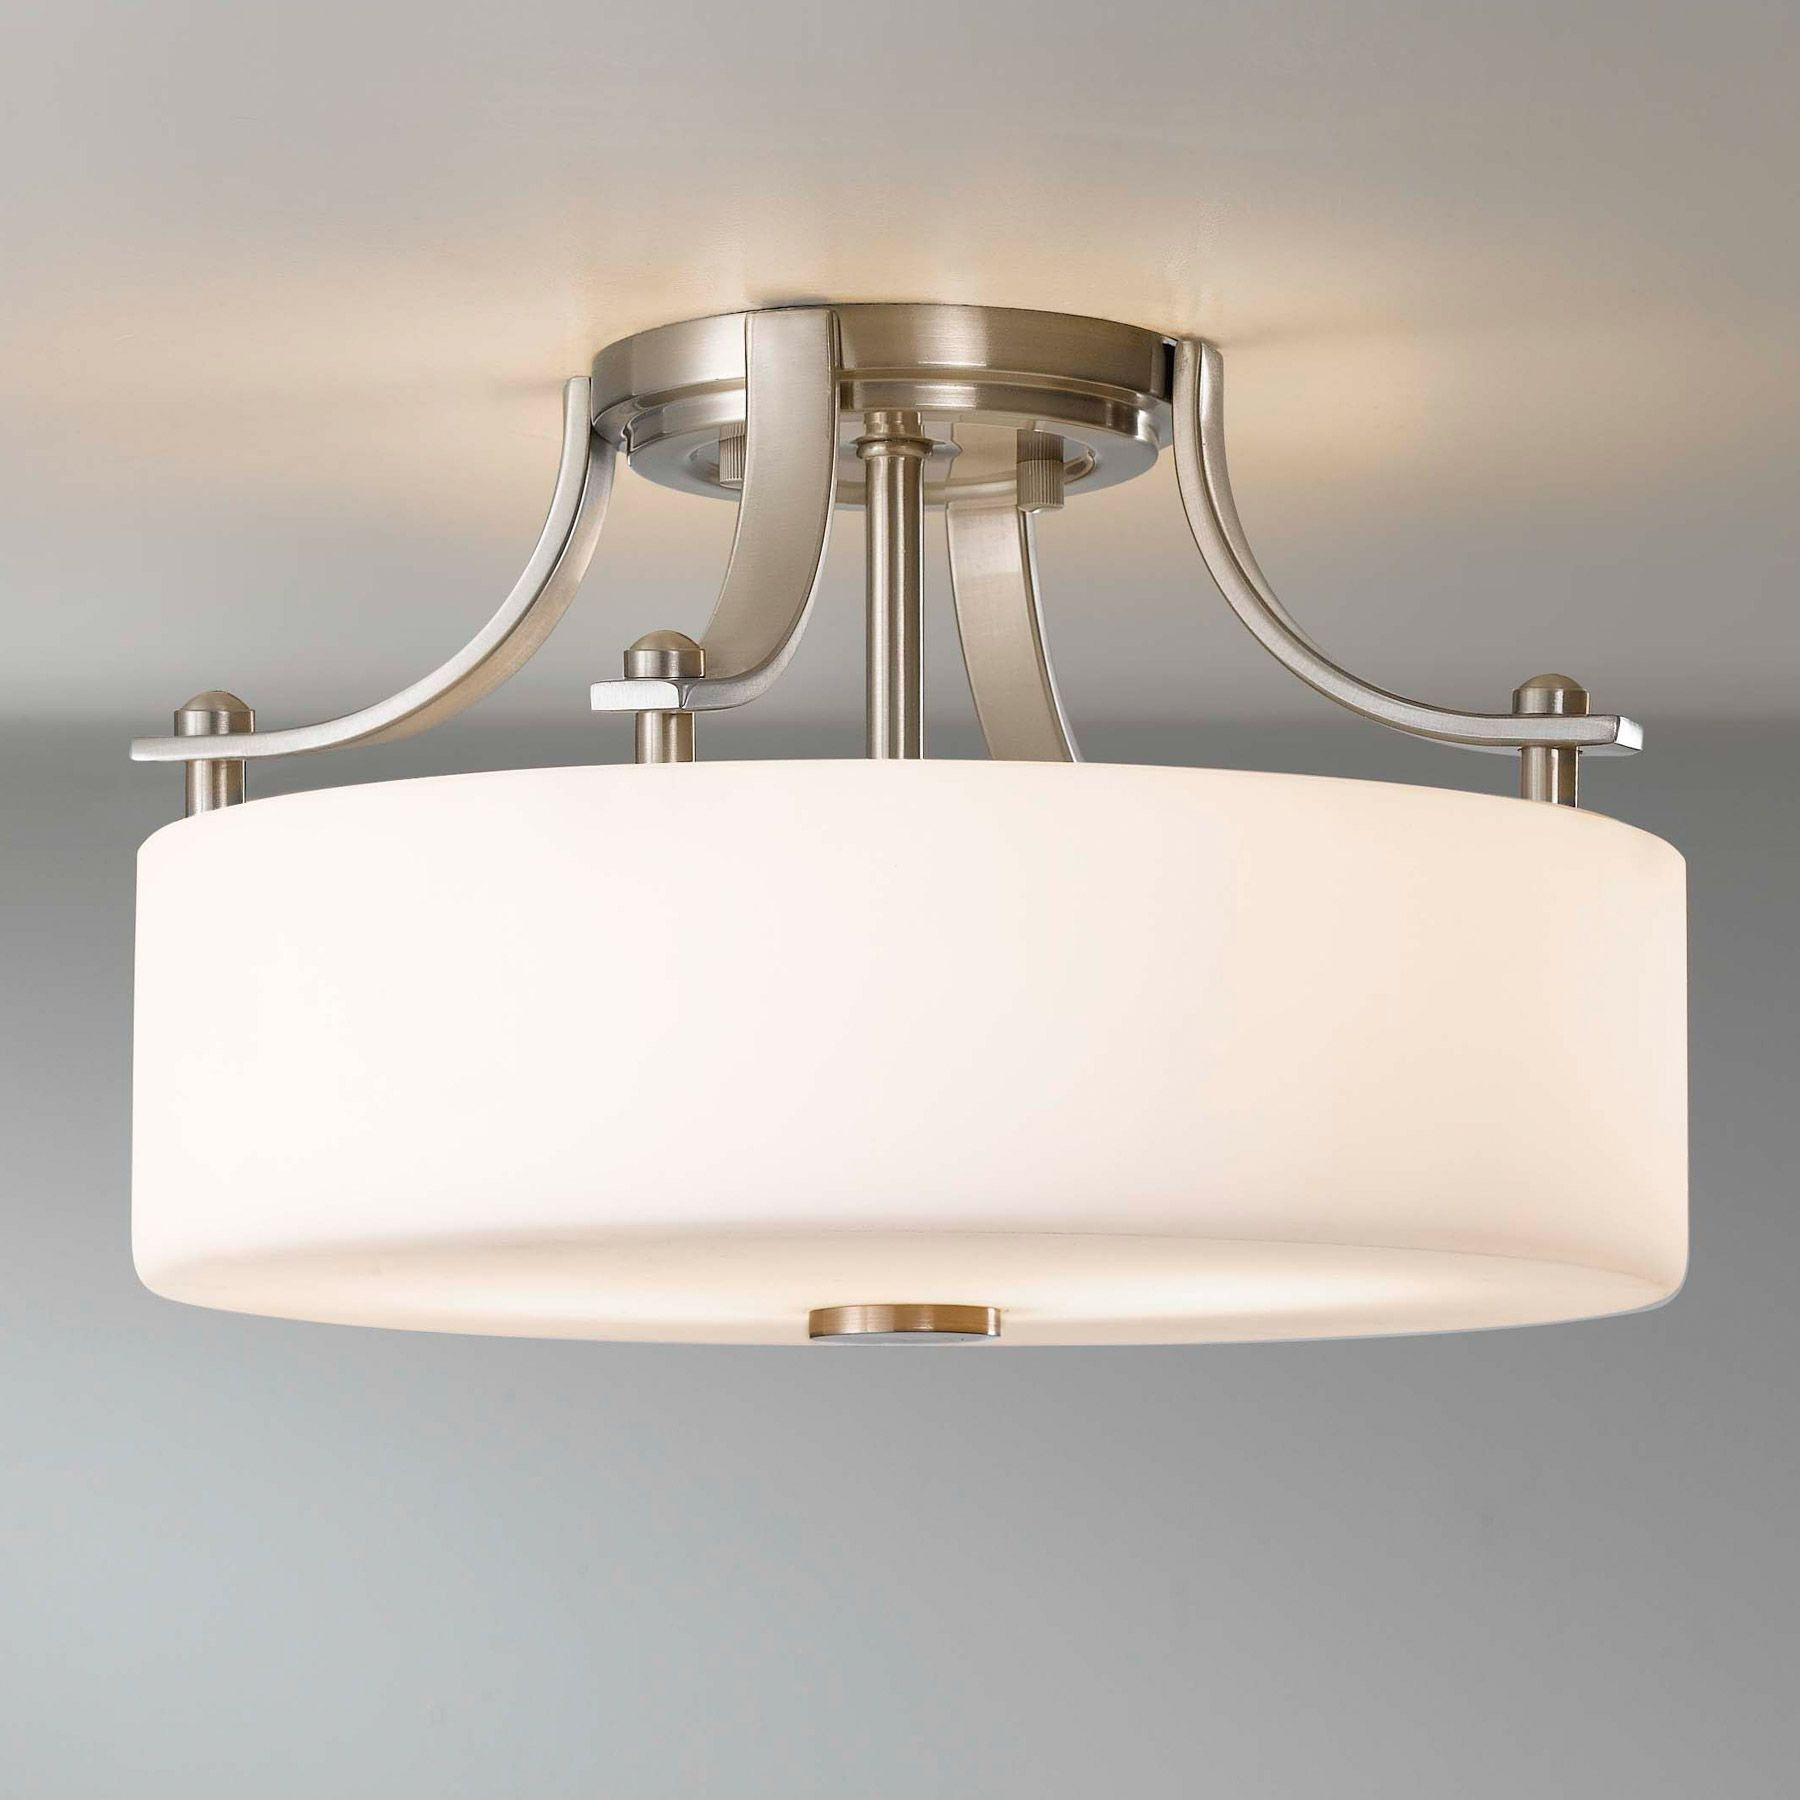 Full Size Of Delta Bathroom Lighting Fixtures Design Guide Best Decorating Ideas Minka